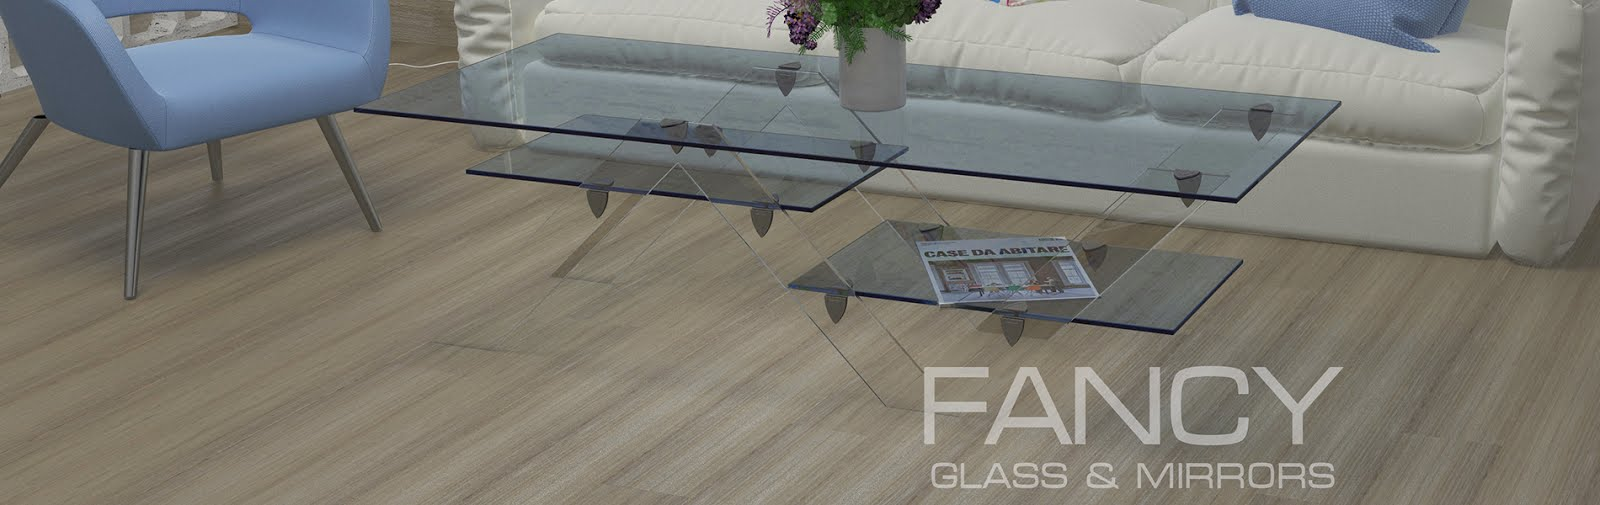 Interior with rectangular coffee table